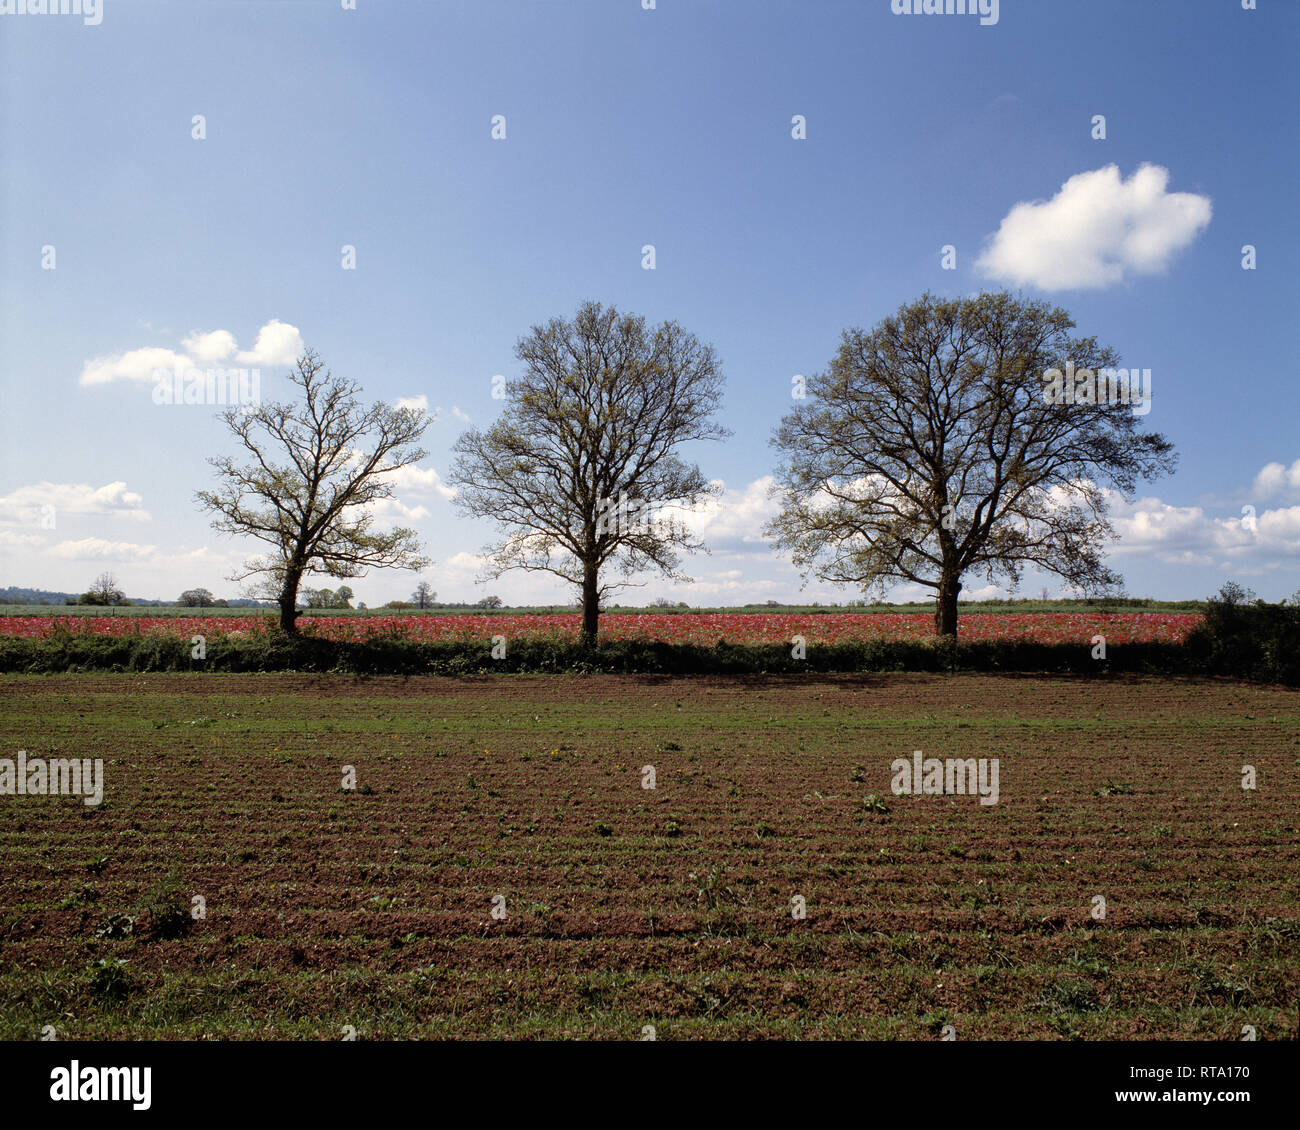 UK. England. Somerset. Agriculture. Ploughed field with row of trees. - Stock Image